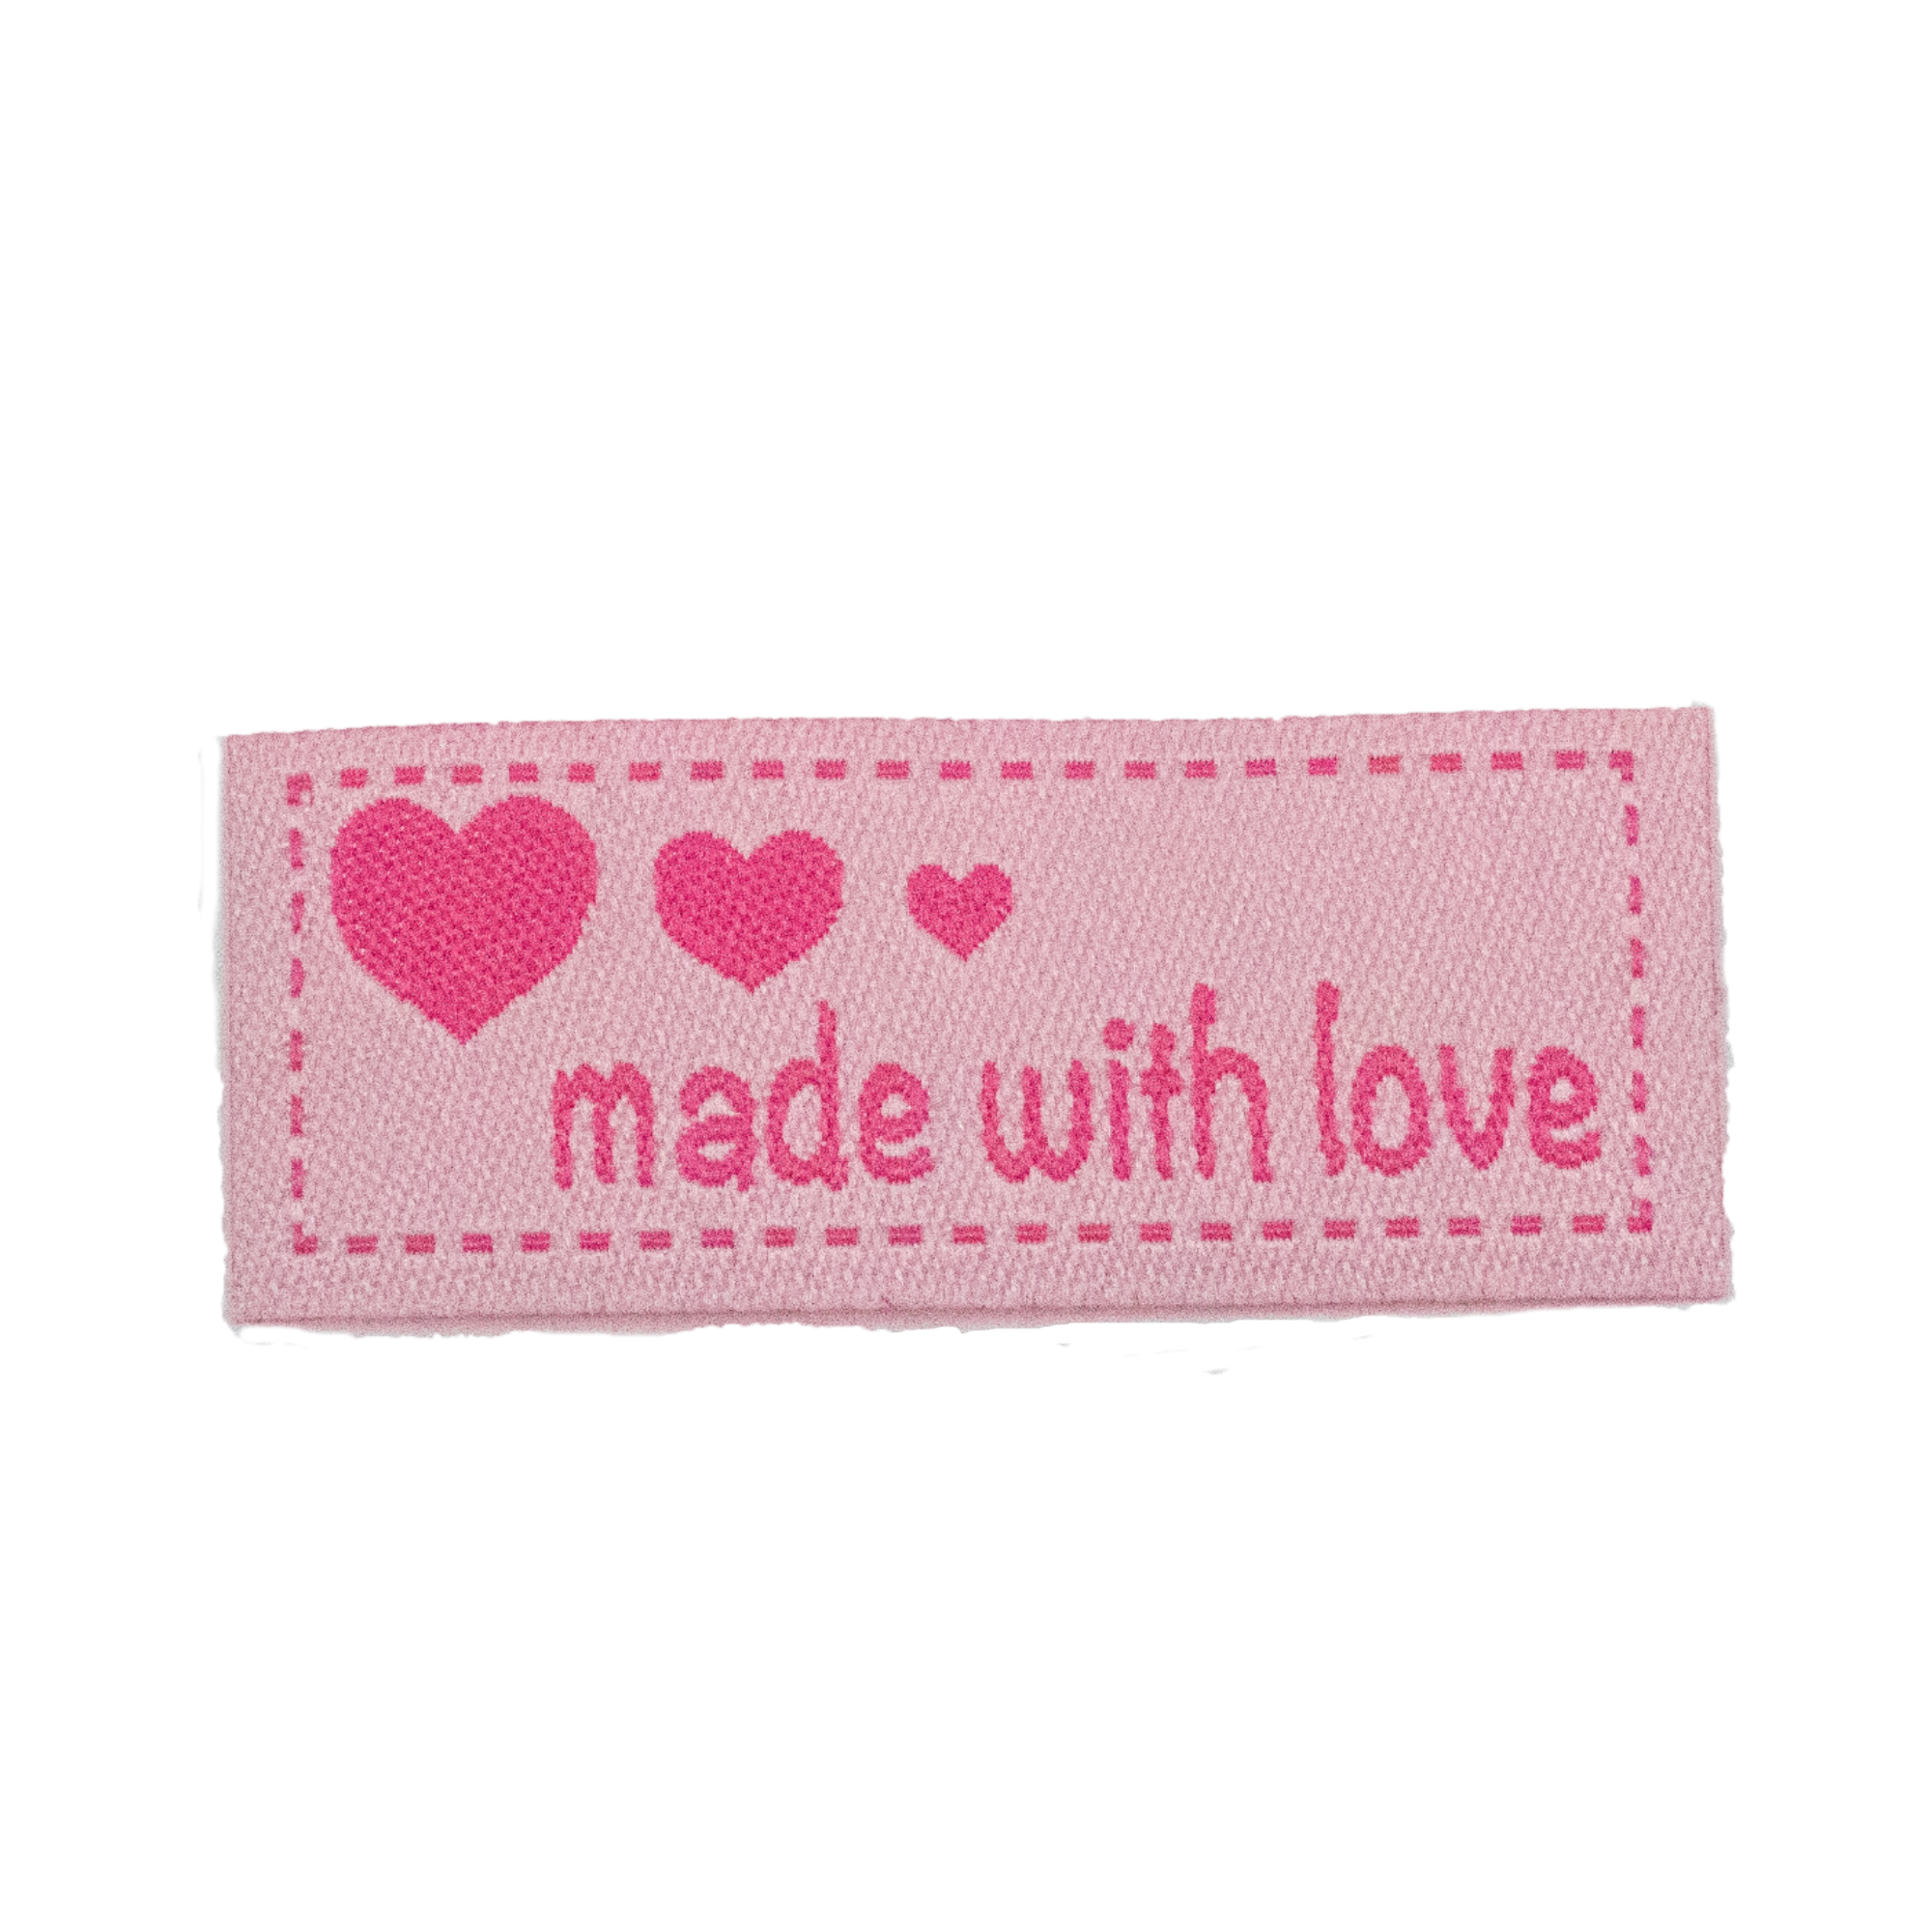 madewithlove.png